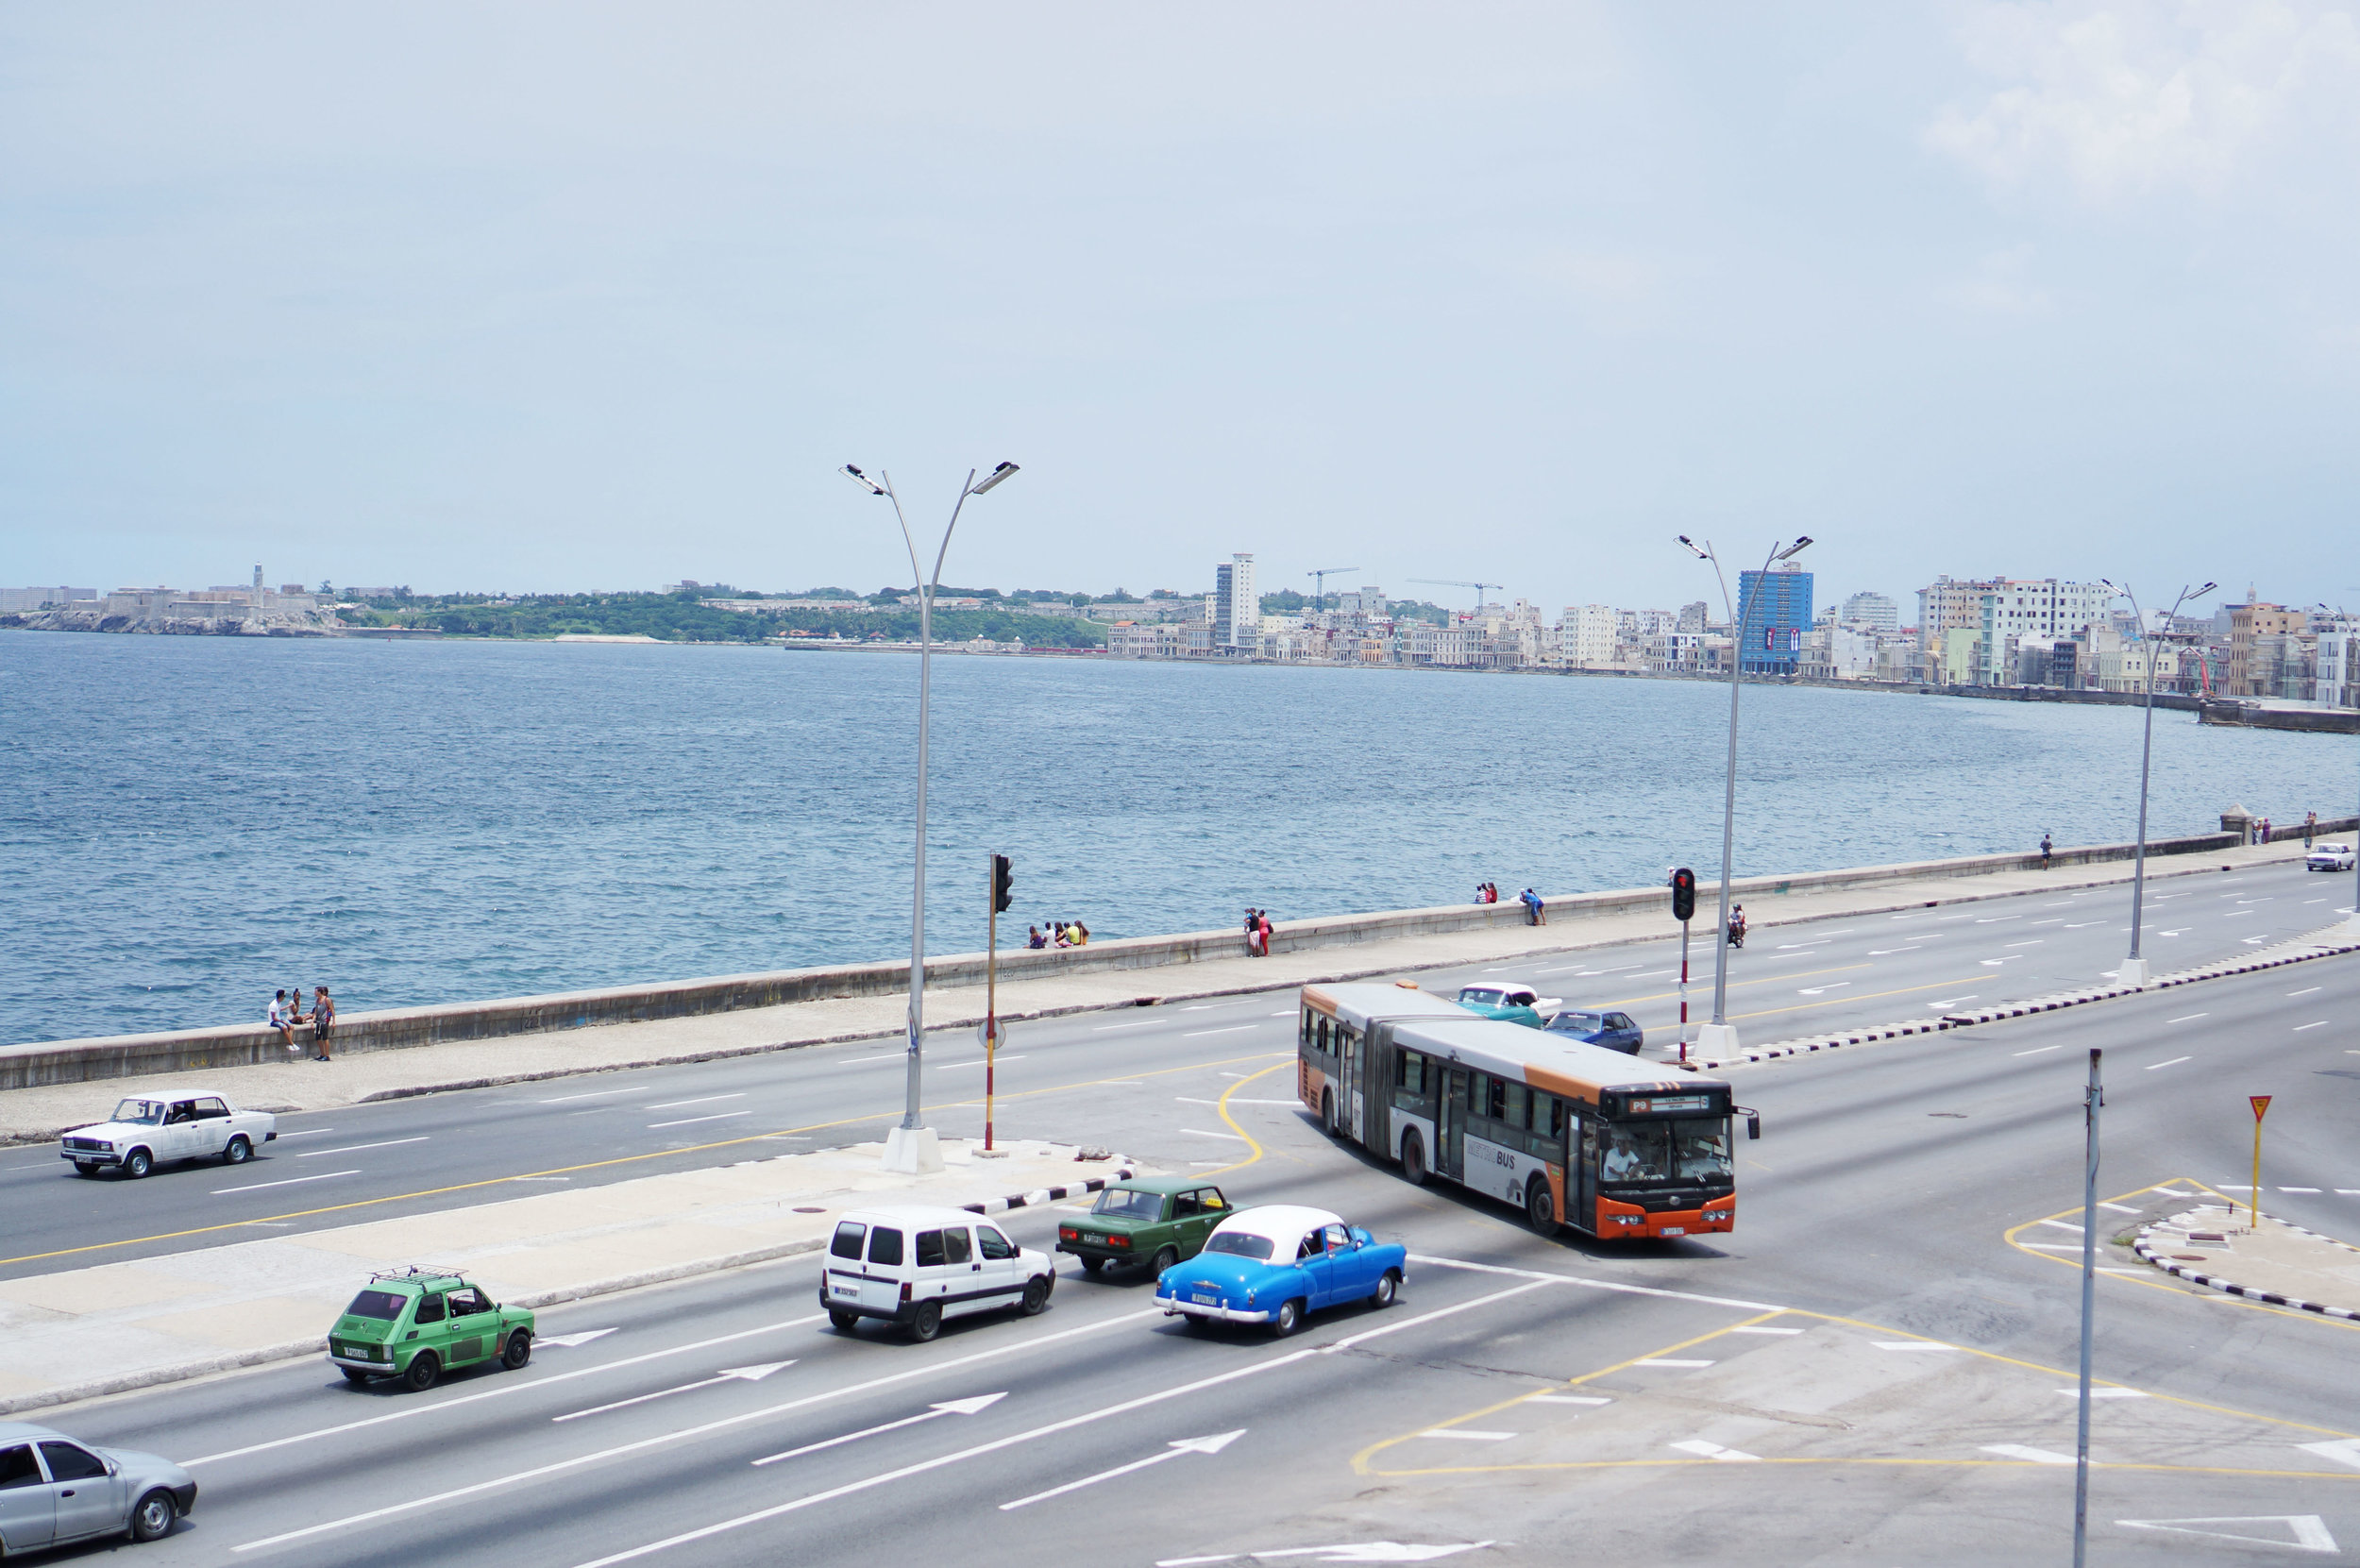 One of my favorite places to sit was at the base of the flagpole watching all the cars drive along the Malecón.